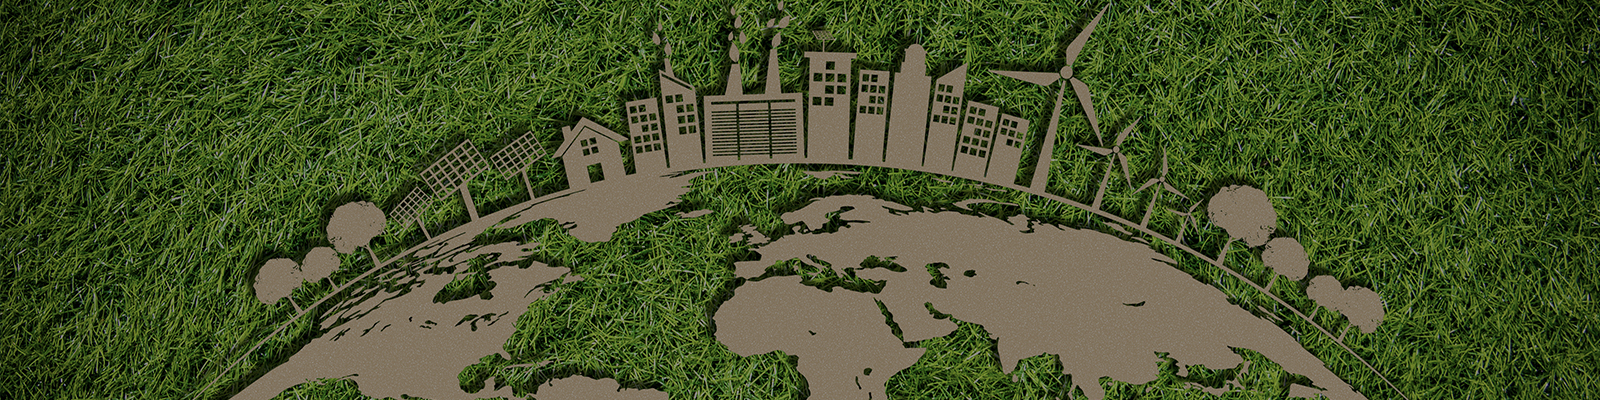 earth graphic with sustainable buildings